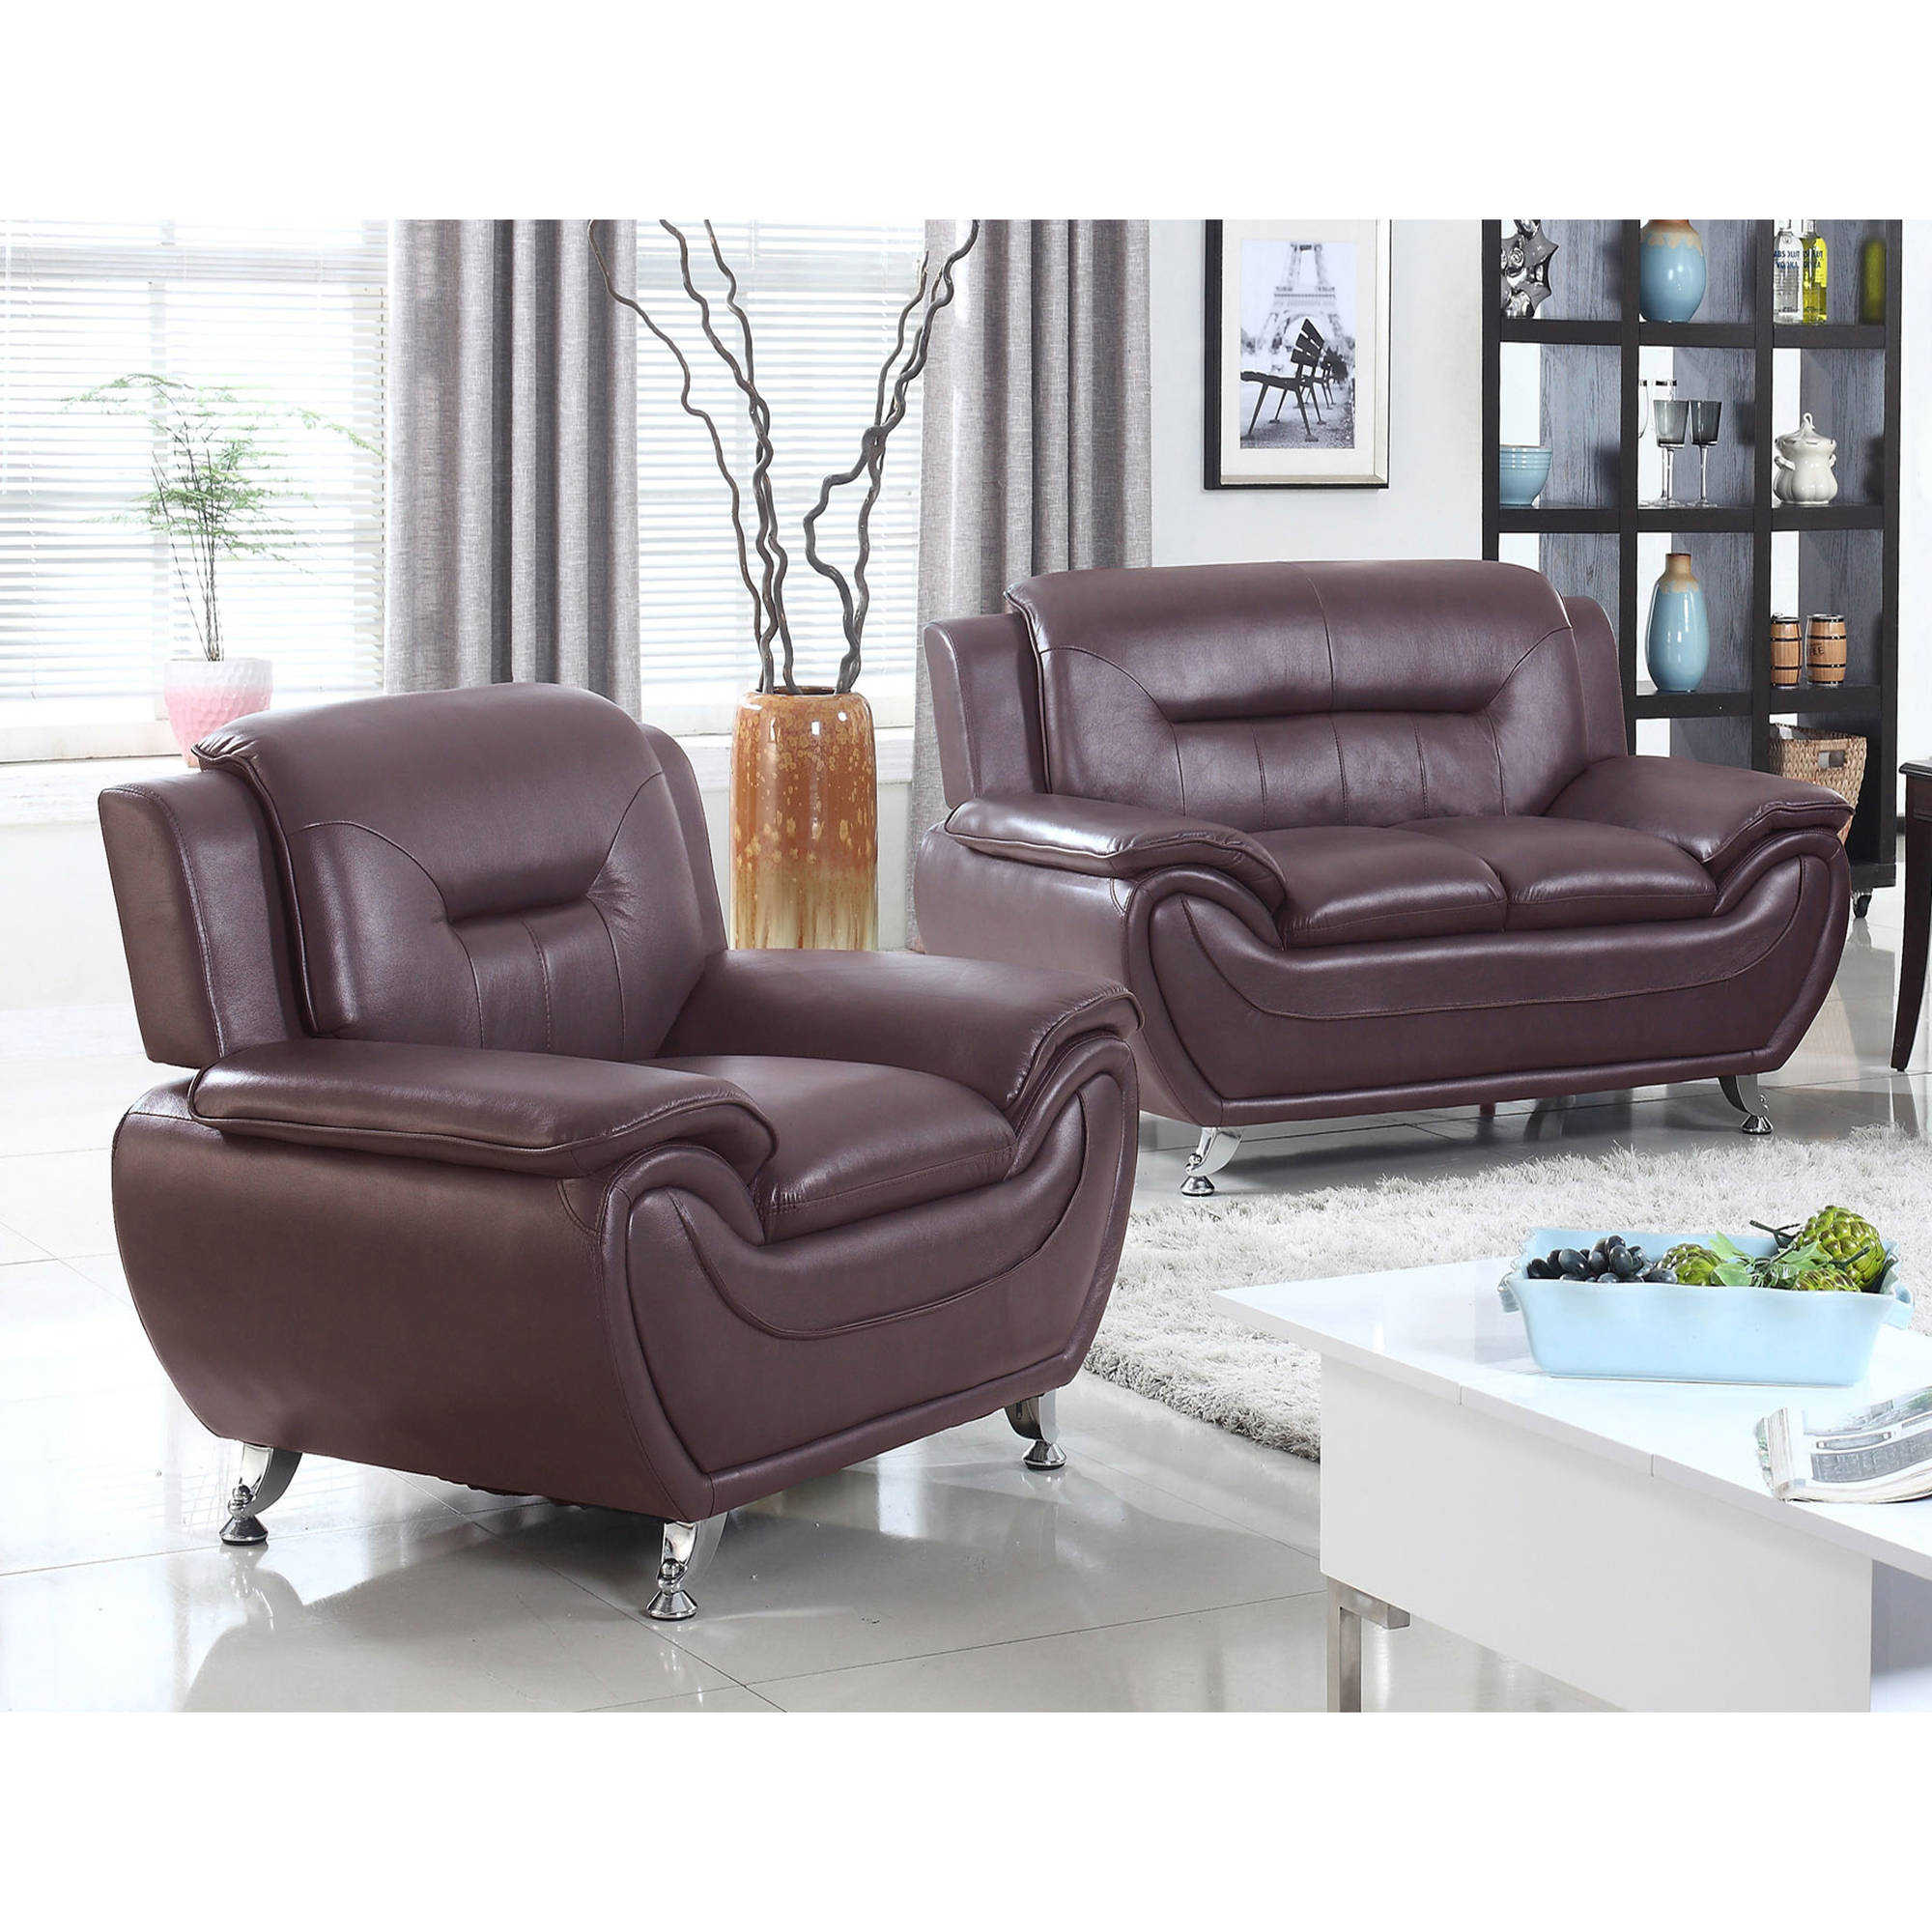 UFE Norton Dark Brown Faux Leather 2-Piece Modern Living Room Loveseat and Chair Set